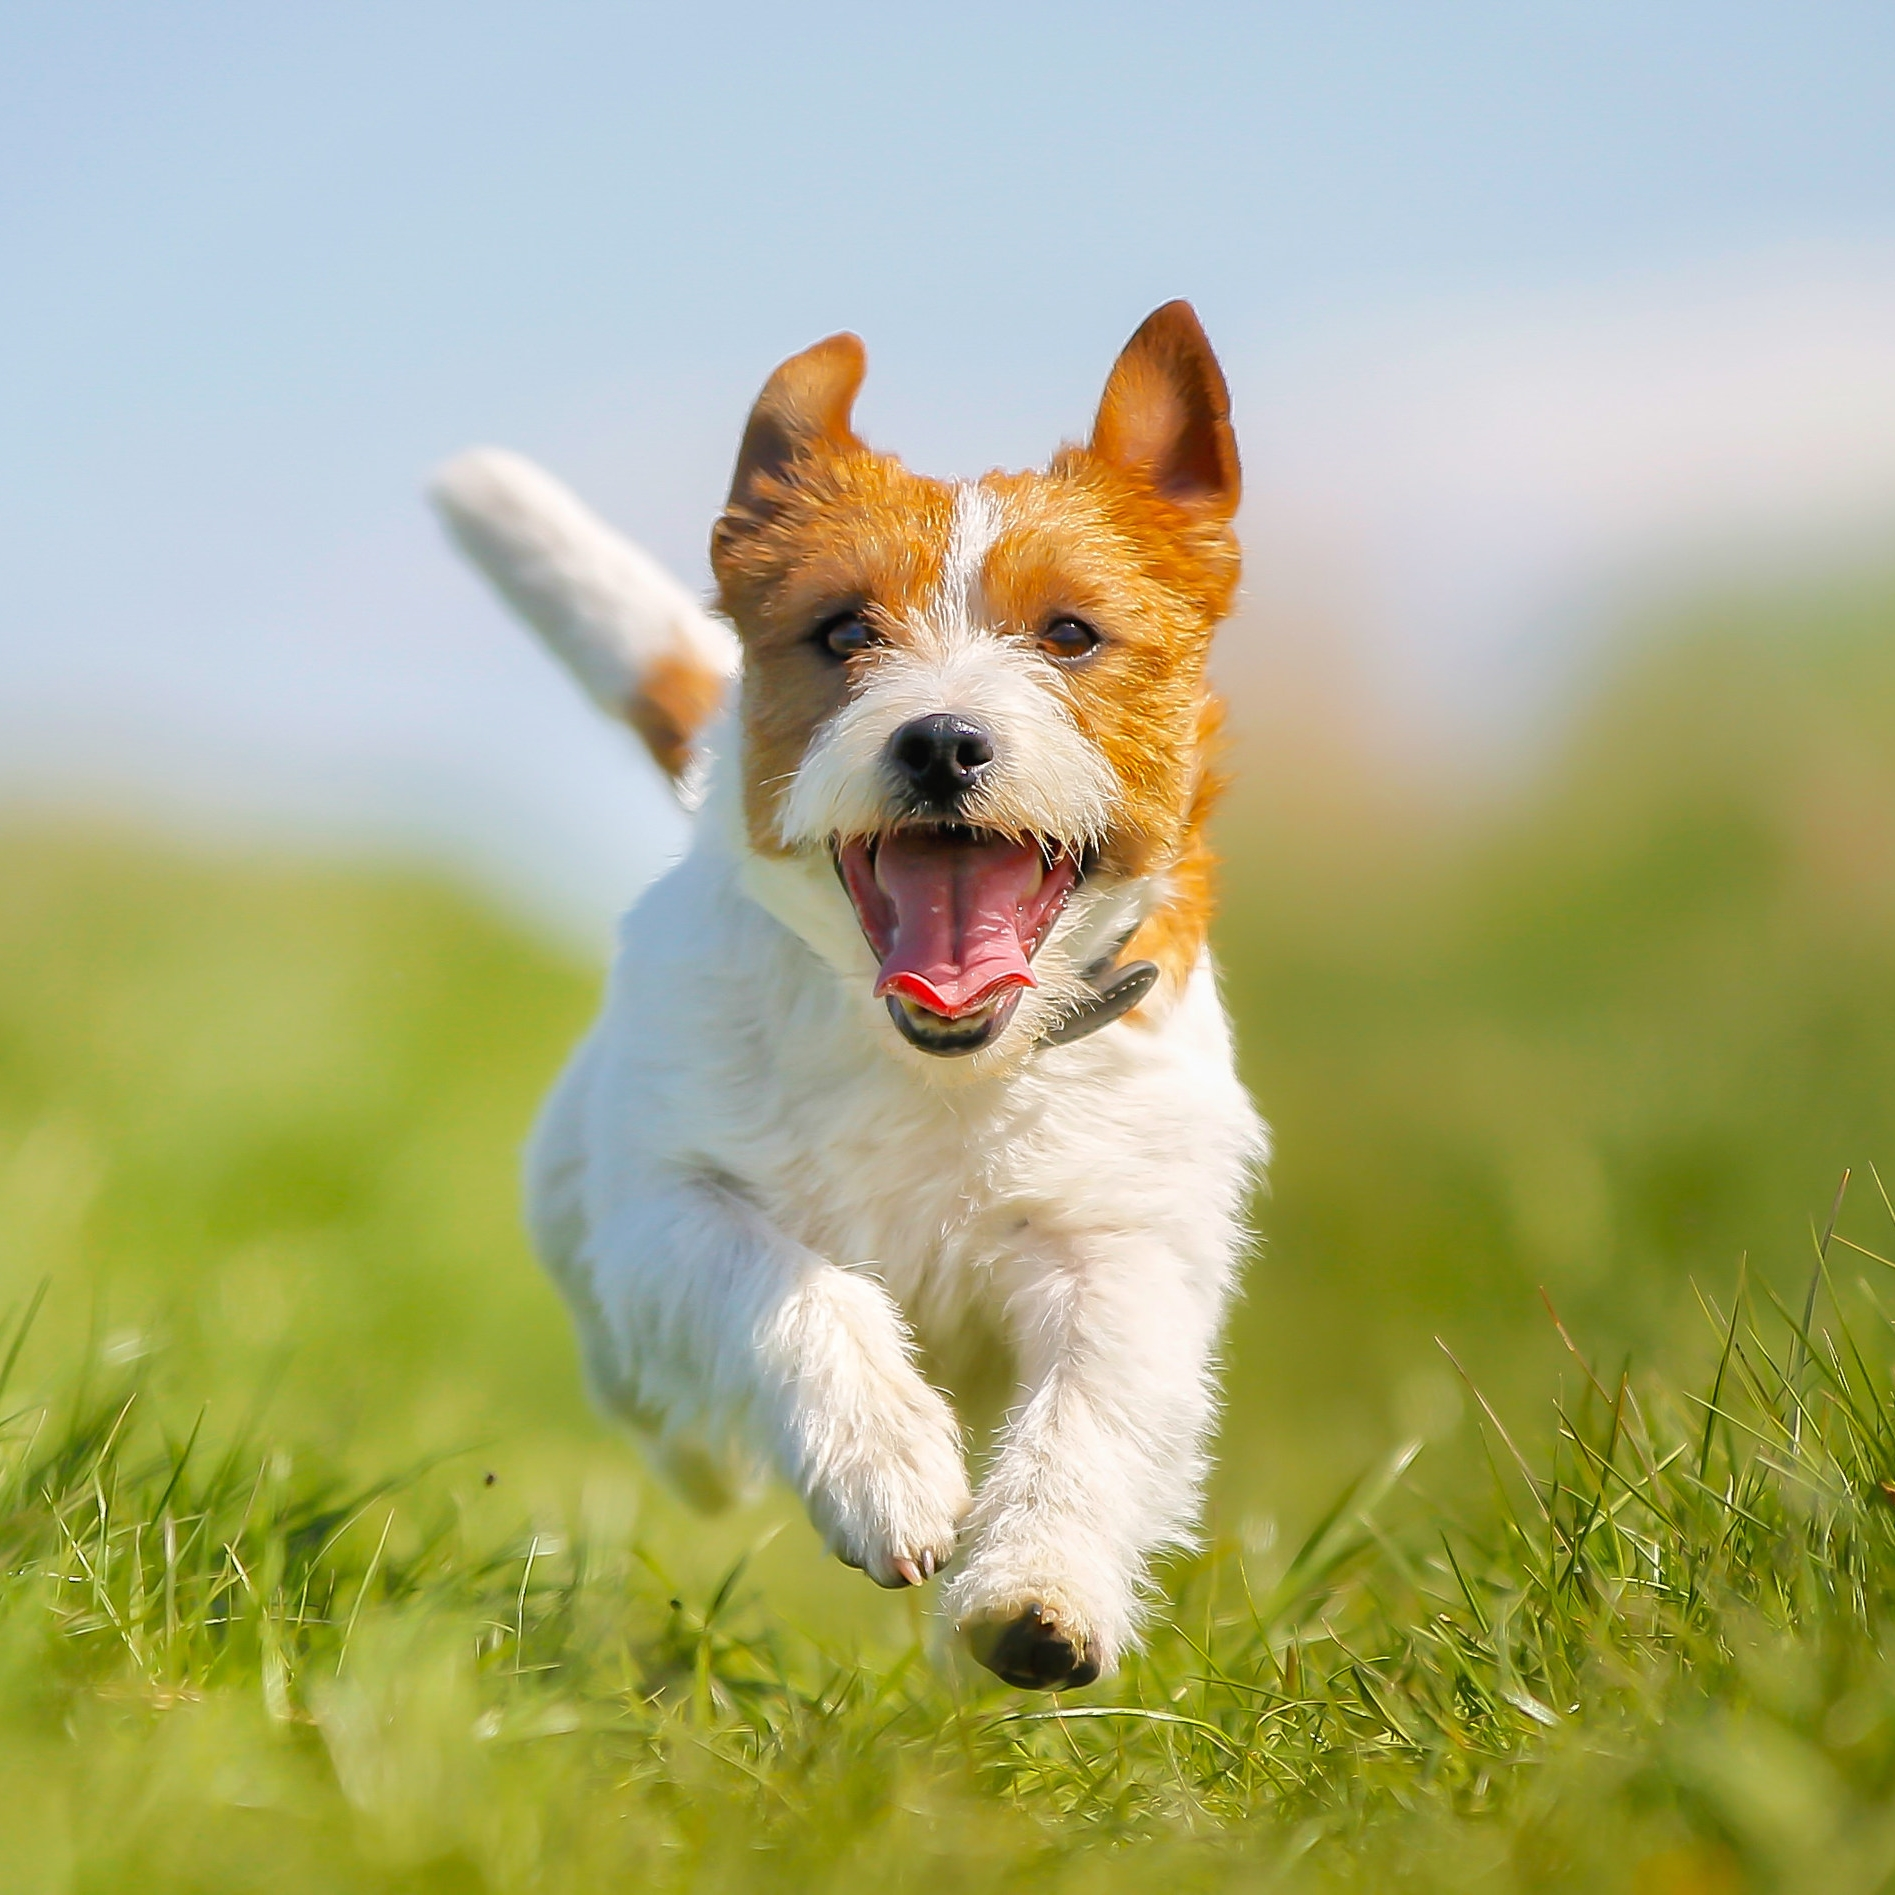 It's the better place for my pets. Doctors and all the staff are so caring and nice. I love them all. They treat my dogs so well and in a very professional way. I recommend this animal hospital 100%.  - Google Review